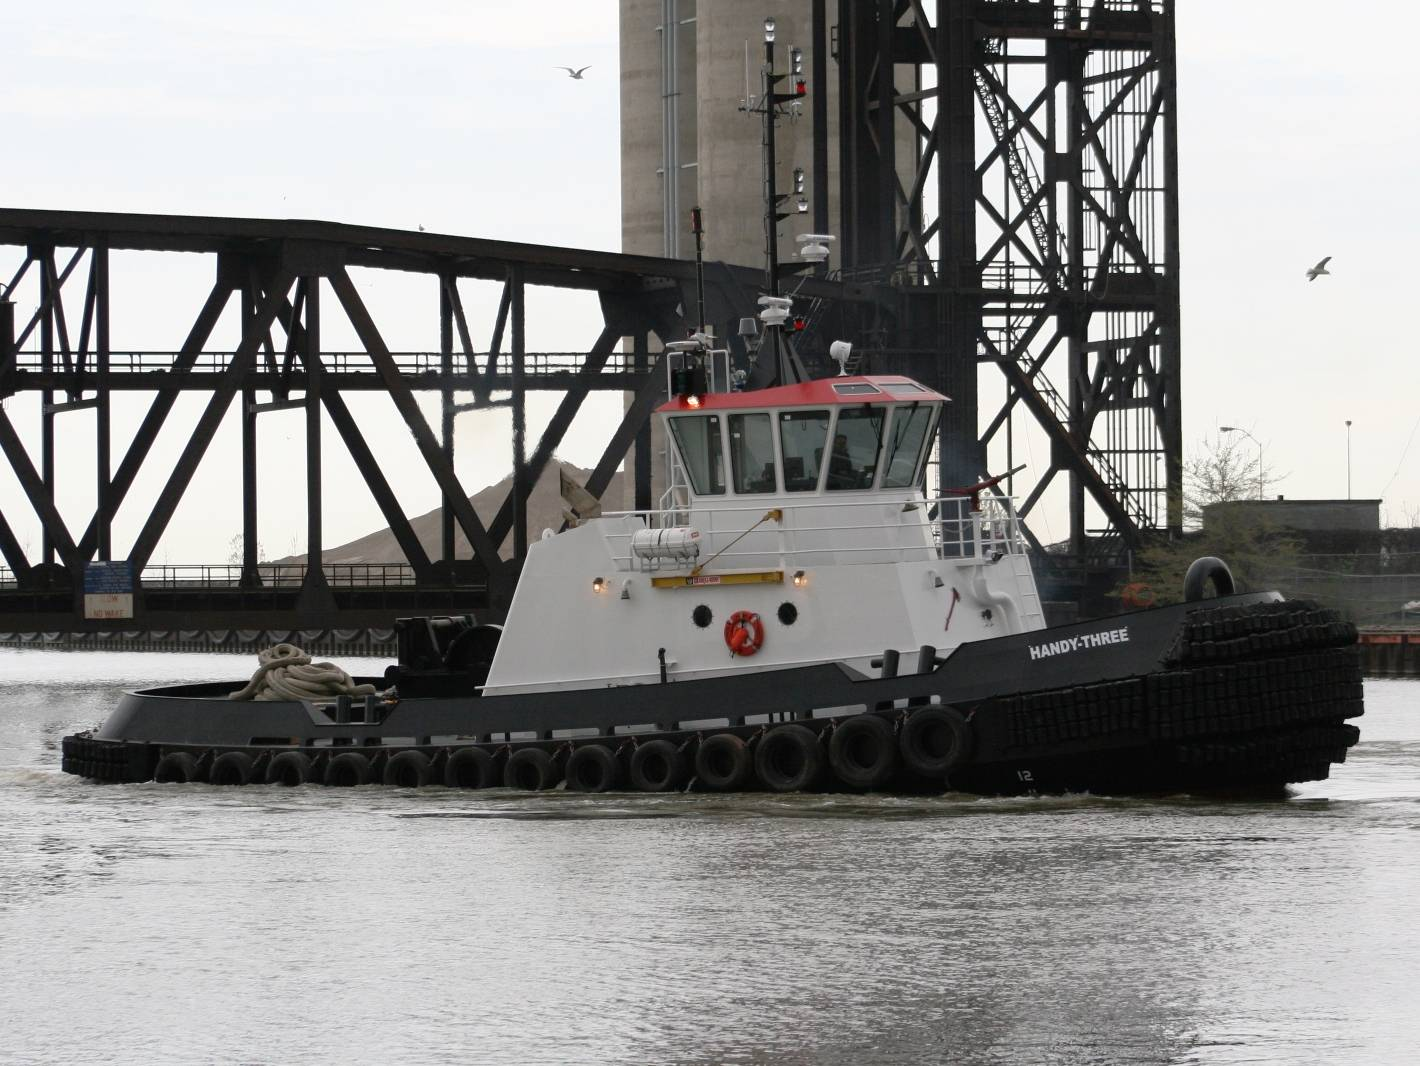 newly constructed tugboat, HANDY-THREE